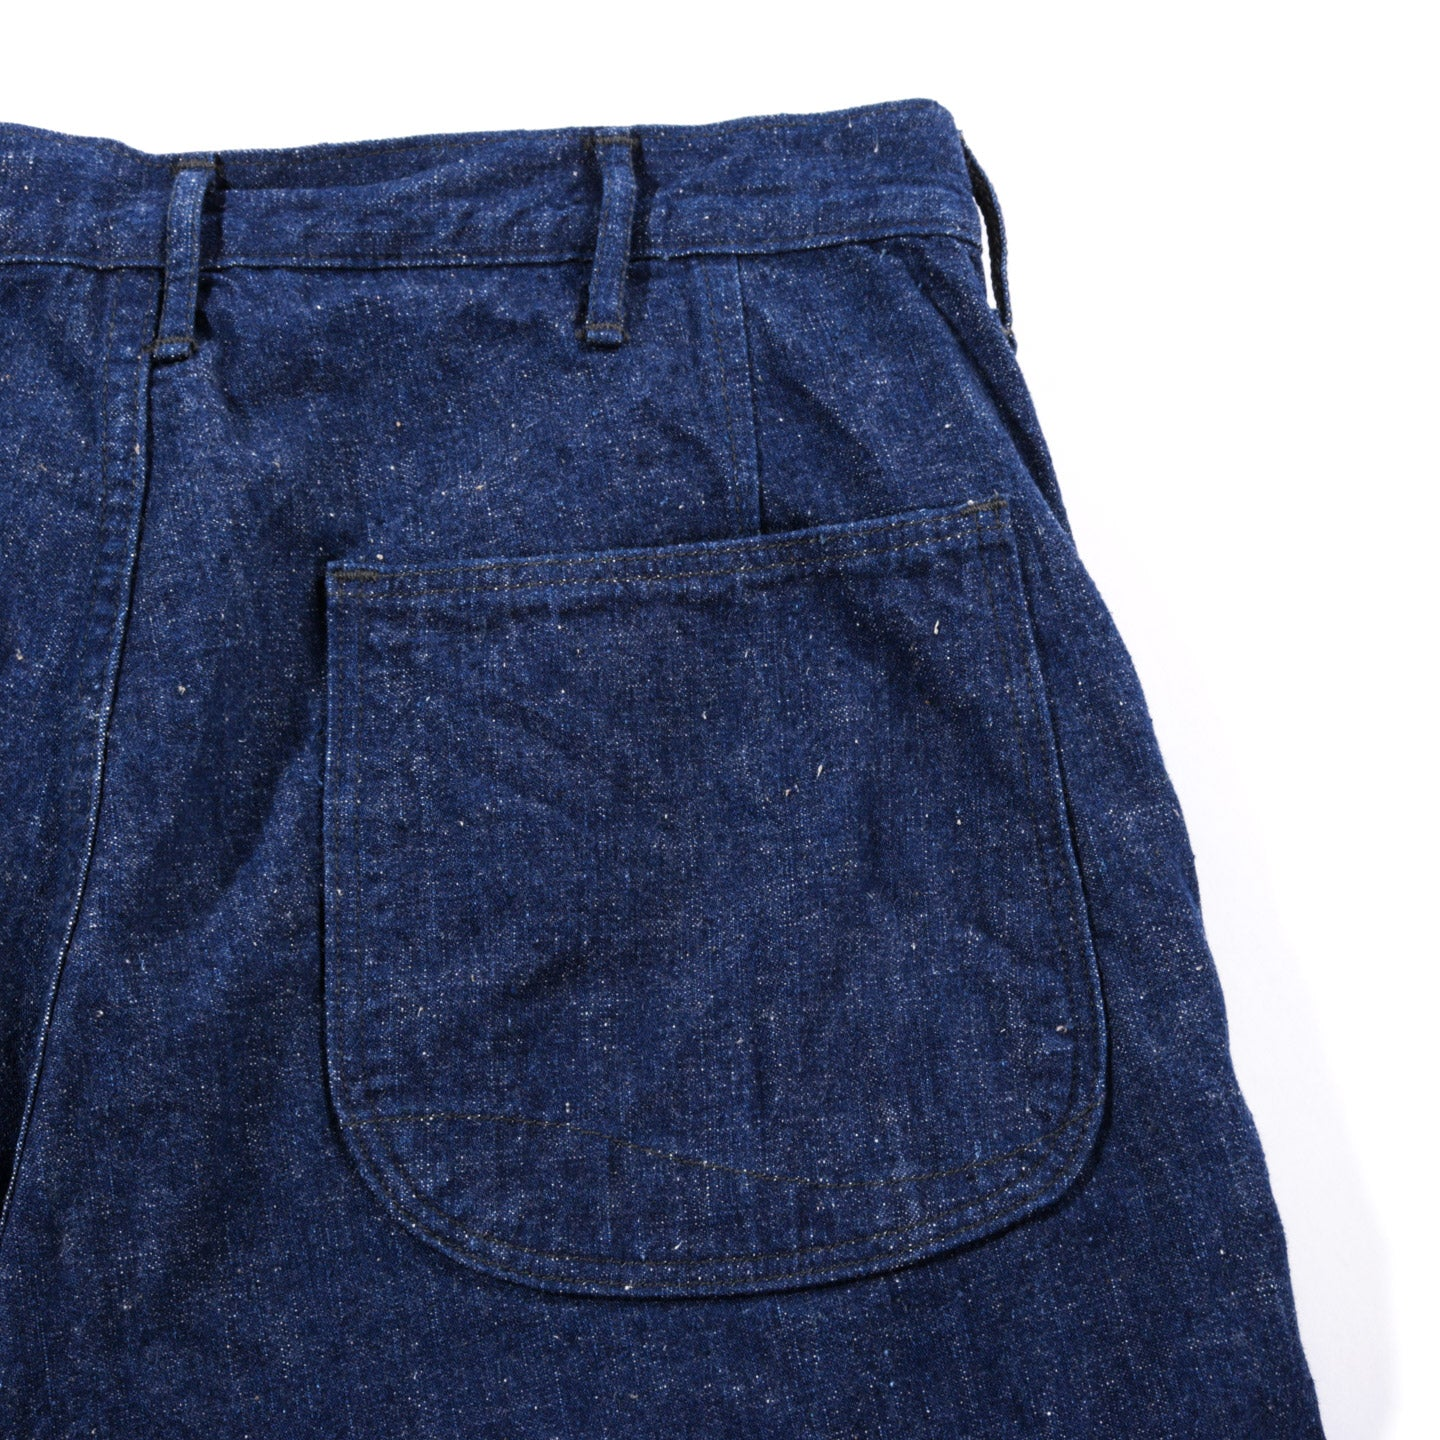 ORSLOW US NAVY UTILITY PANTS OG SELVEDGE DENIM ONE WASH